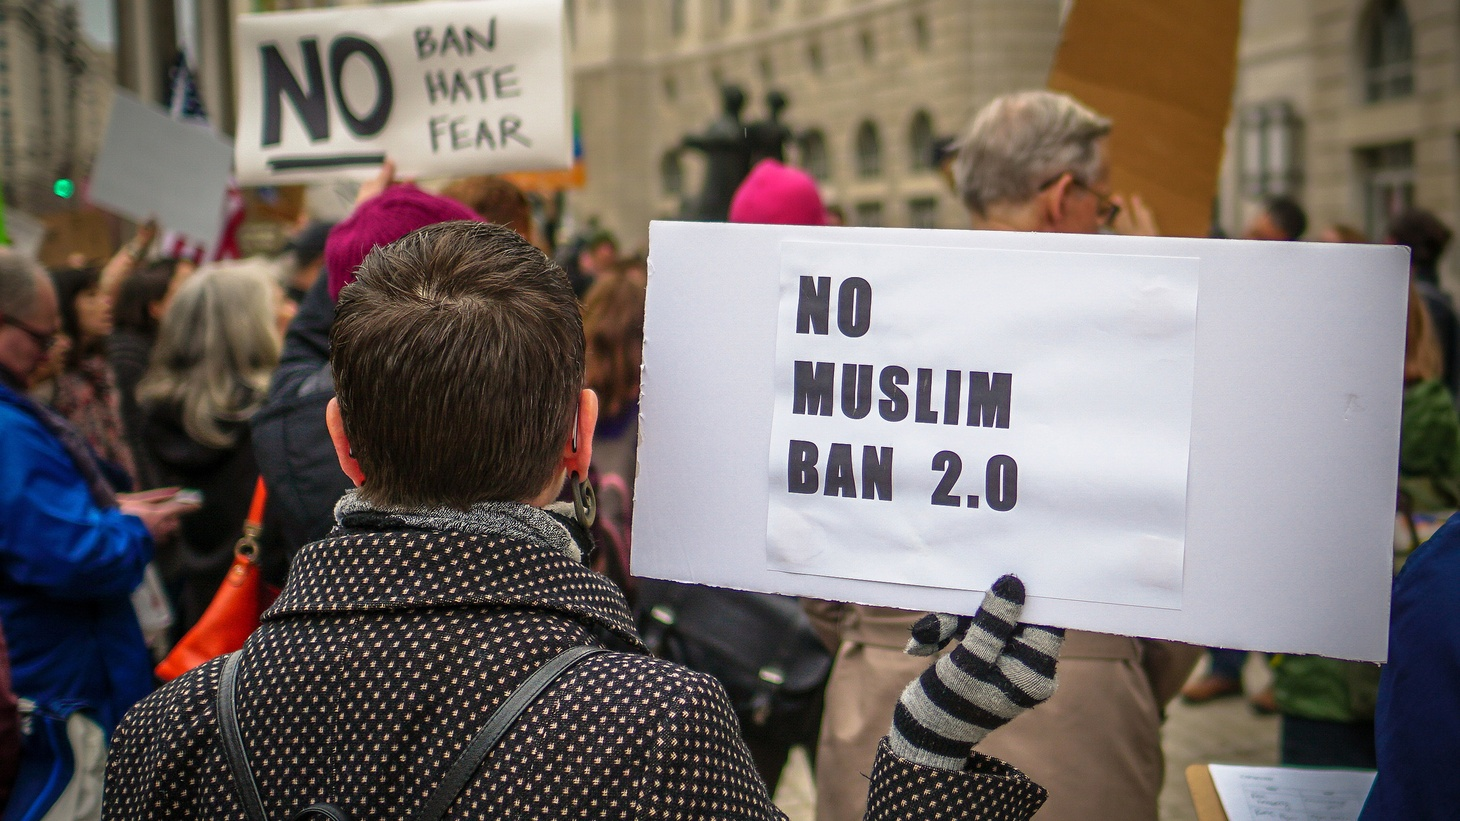 The Trump Administration's revised travel ban may be good news for some visa holders and others, but it's still being challenged as unconstitutional. Some reporters call it the beginning of a long-term effort to change the demographic make-up of the United States.